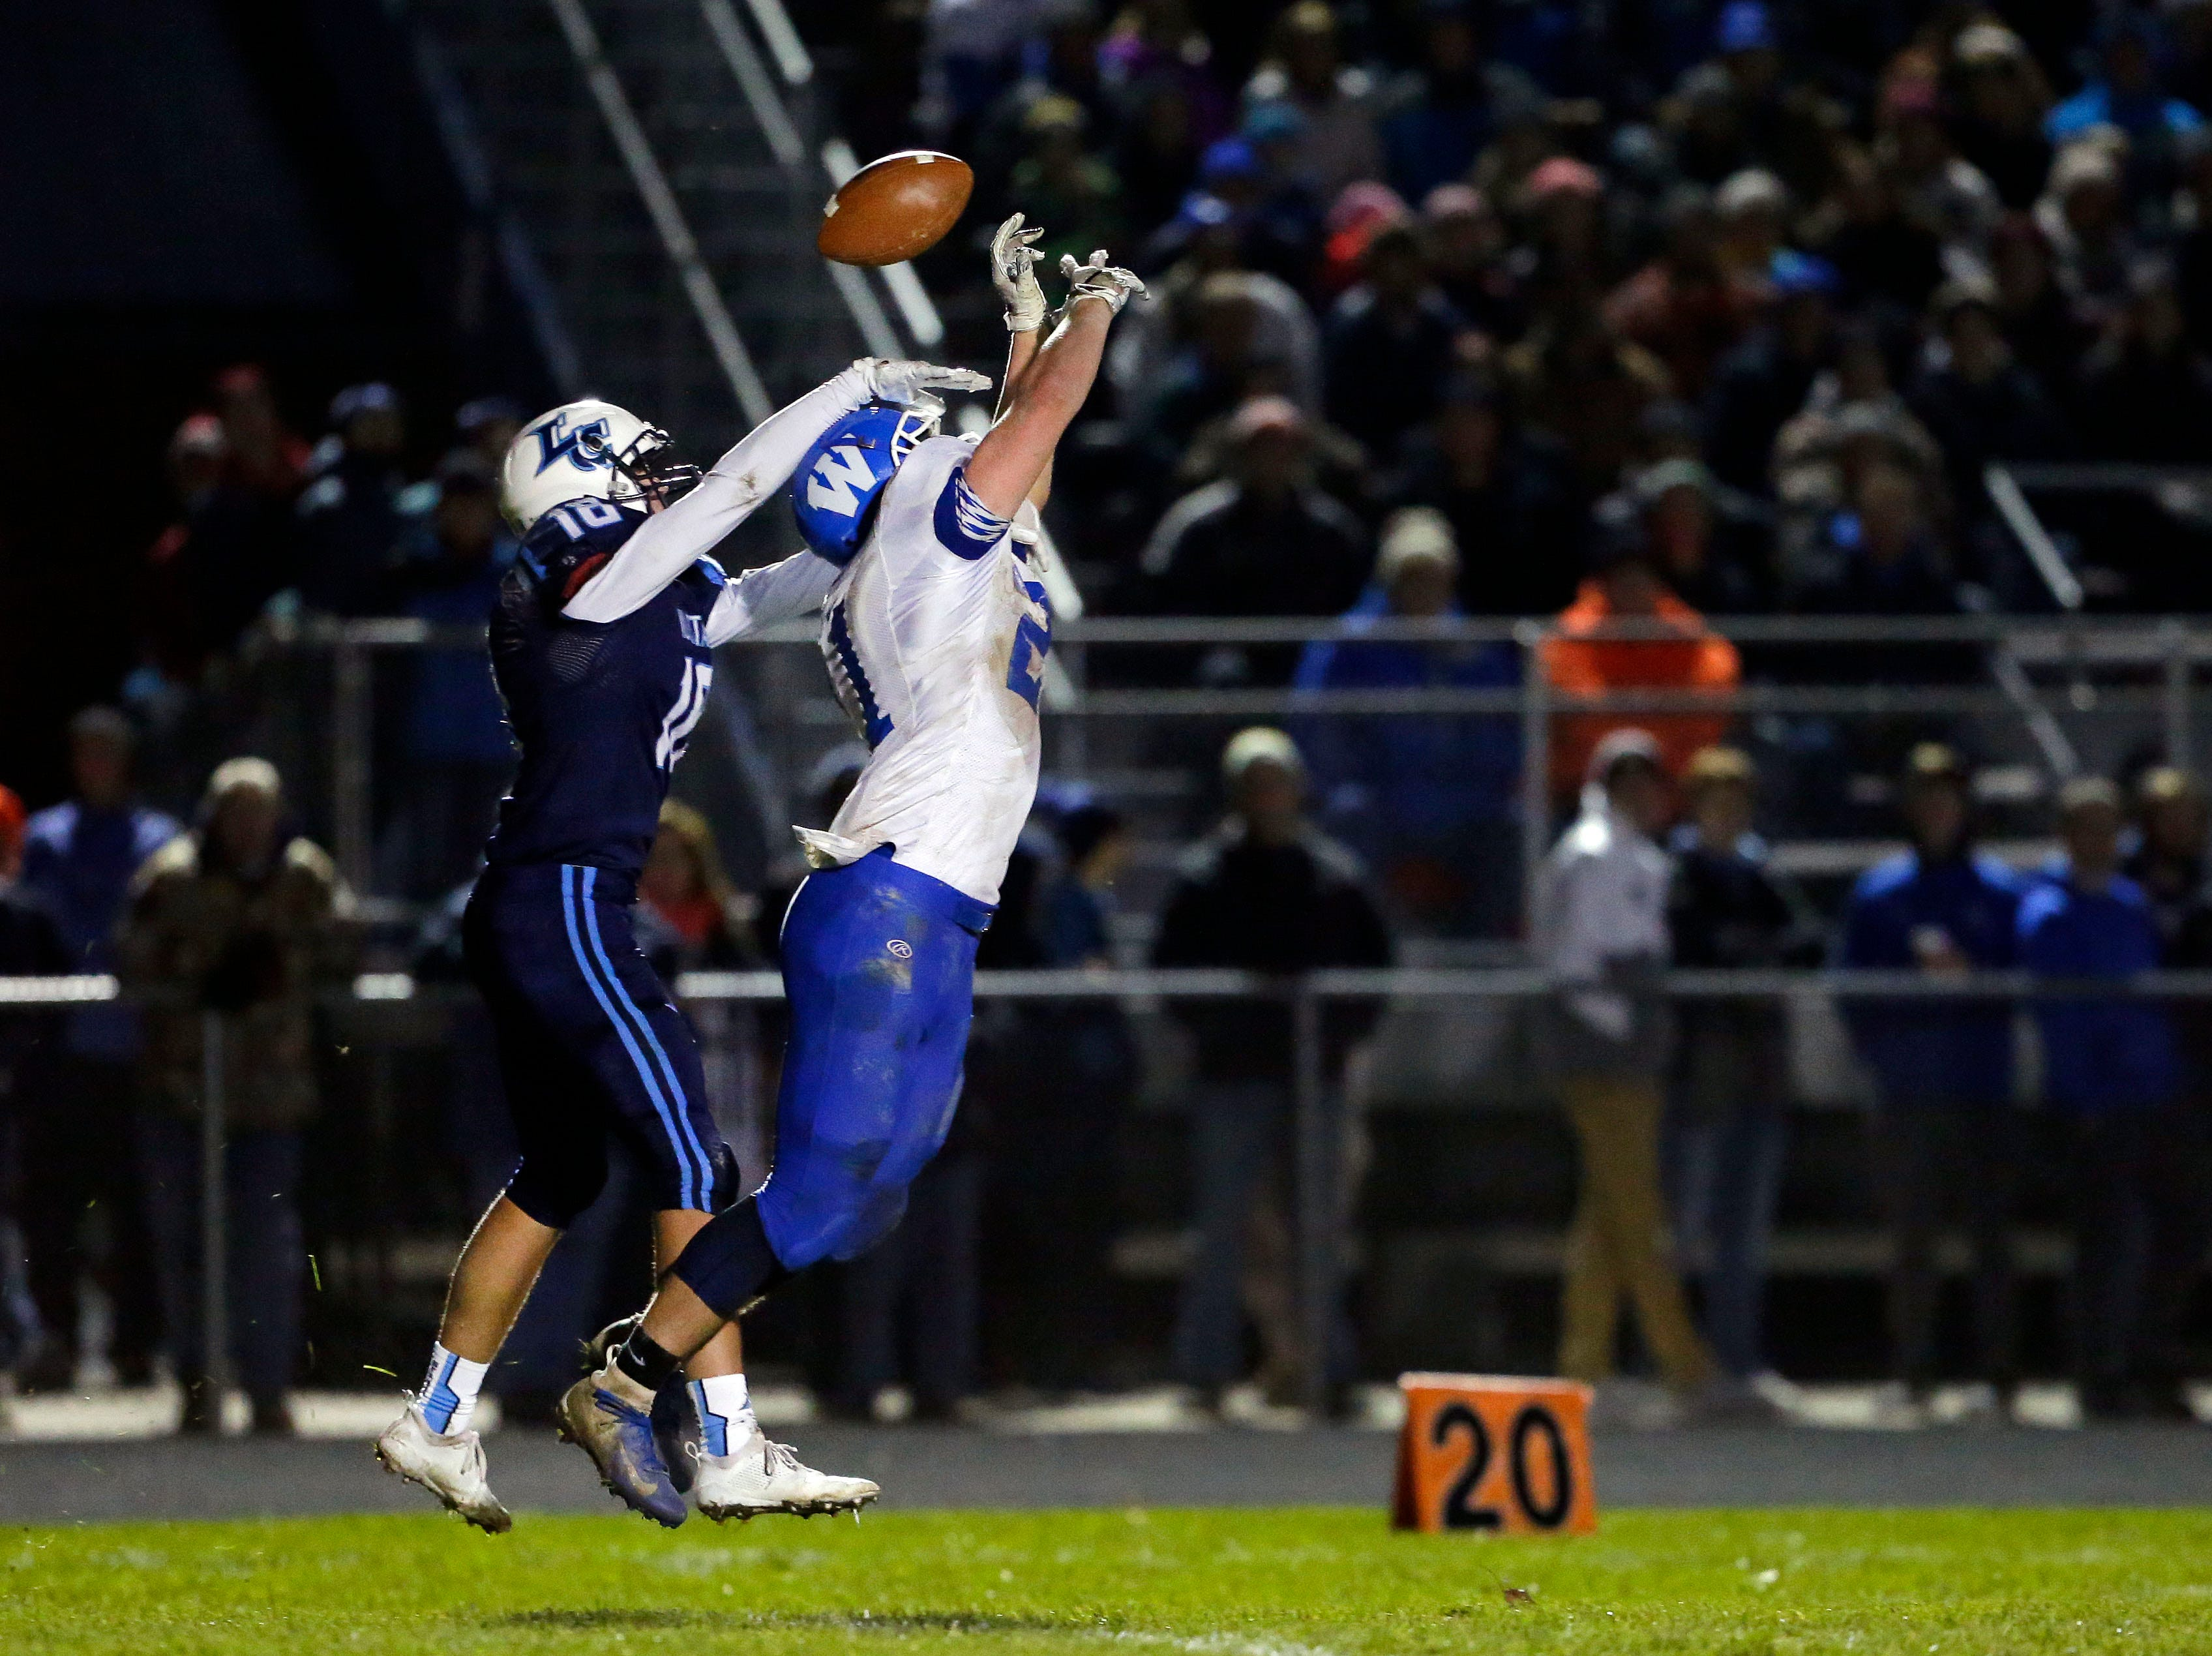 David Peeters of Little Chute defends a pass to Ben Jaeger of Wrightstown in a WIAA Division 4 Level 3 playoff game Friday, November 2, 2018, at Fitzpatrick Field in Little Chute, Wis.Ron Page/USA TODAY NETWORK-Wisconsin